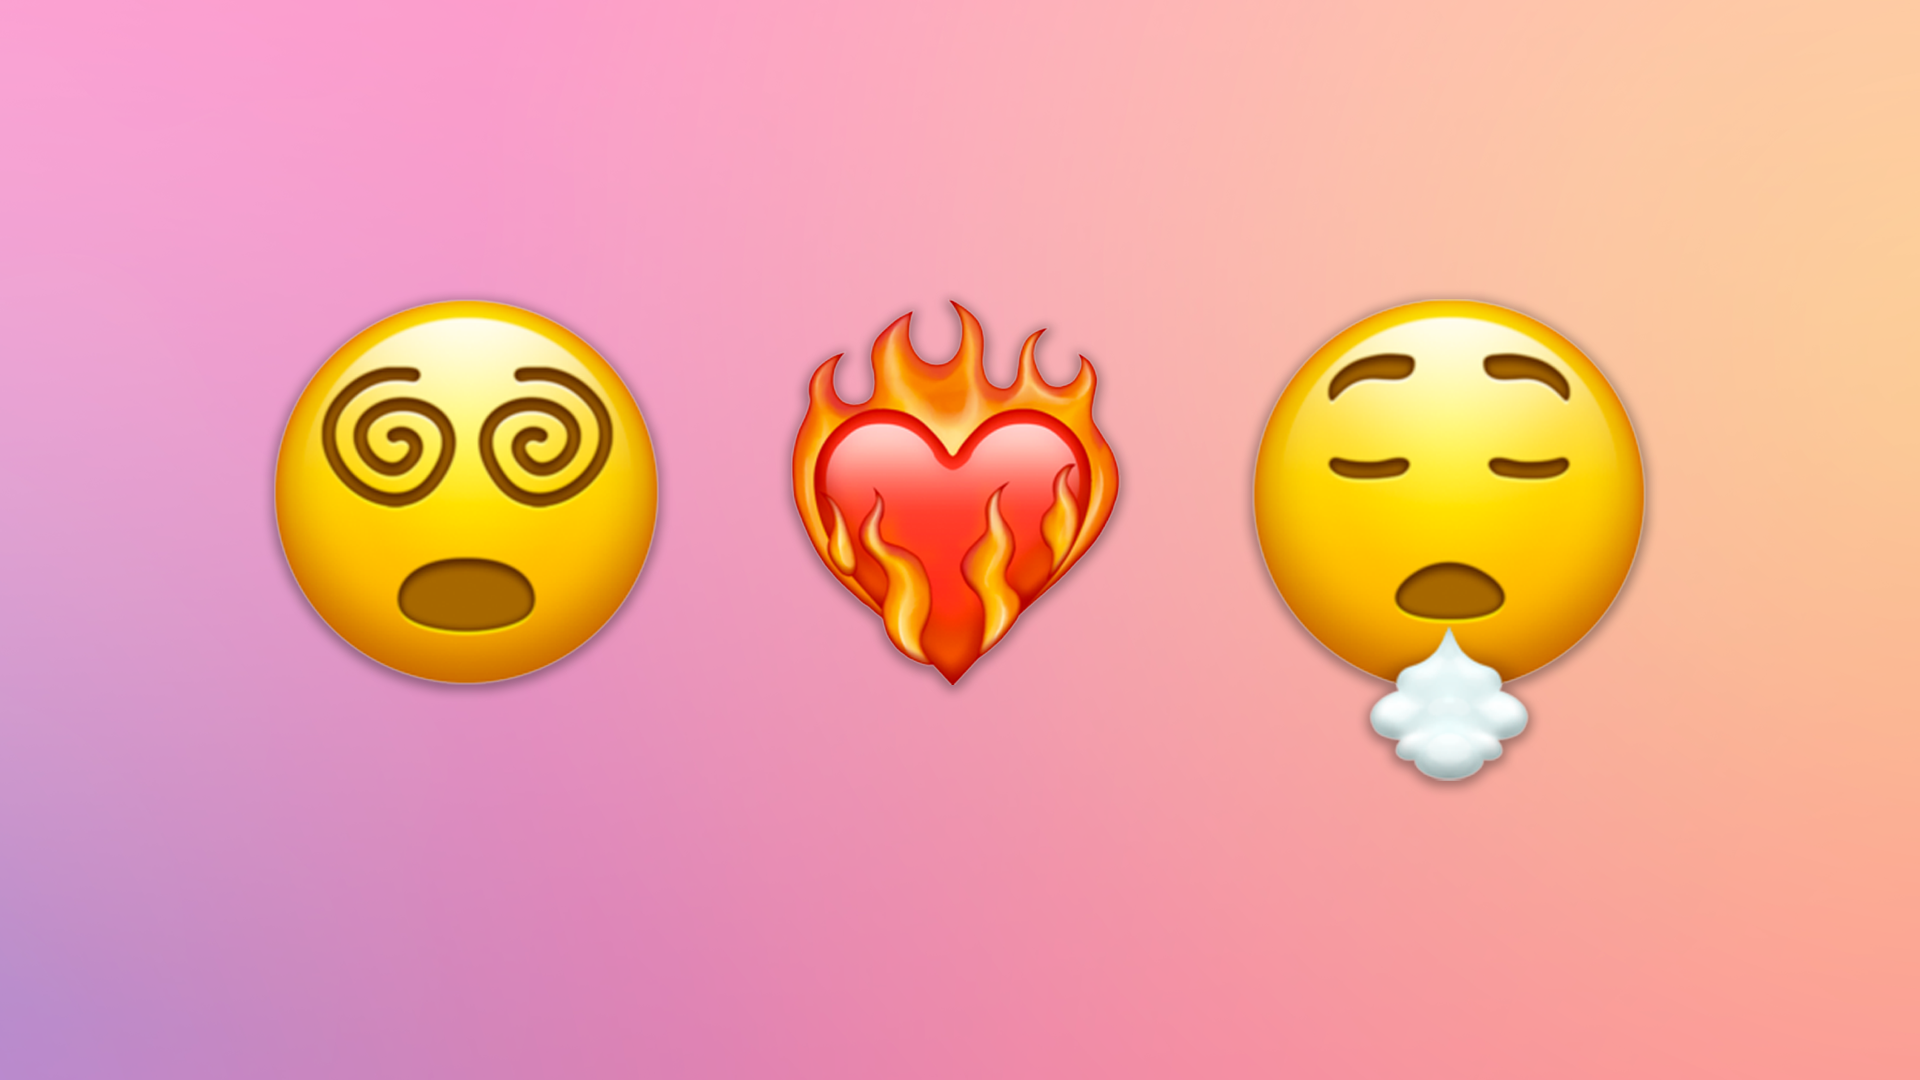 Over 200 New Emojis Are Coming In 2021 & They're All One Big Mood